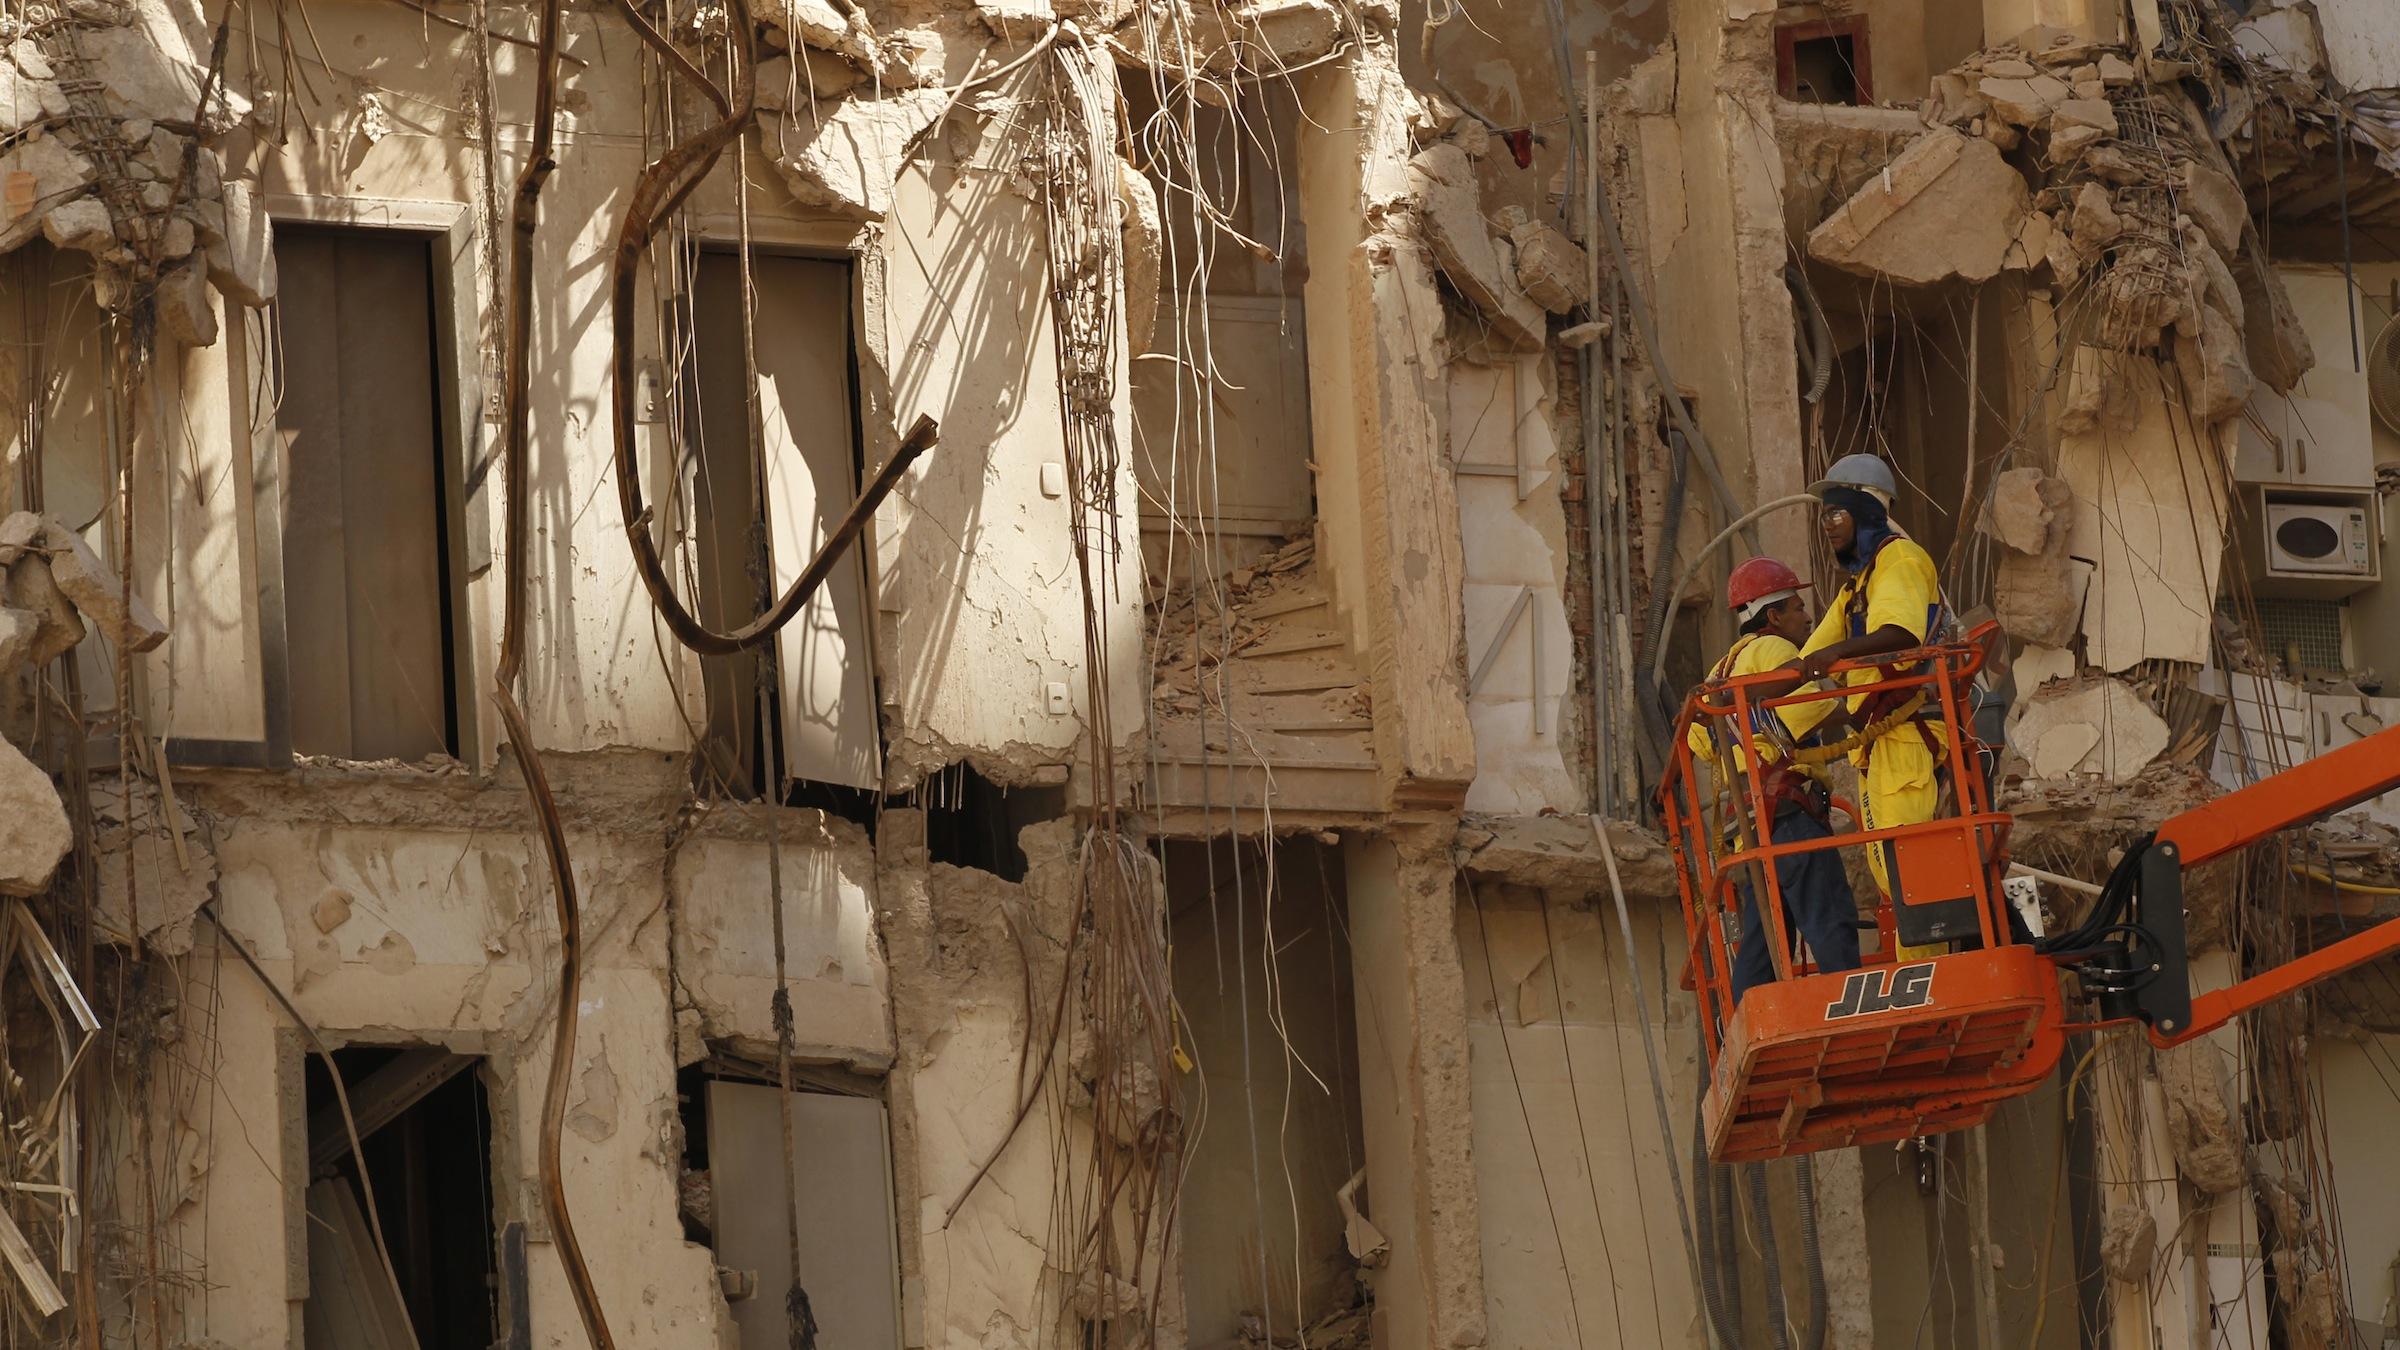 Workers inspect three collapsed buildings in Rio de Janeiro, Brazil, Wednesday Feb. 1, 2012.  A 20-story building collapsed in Rio's center a week earlier, causing the destruction of two smaller ones and killing at least 17 people. The sudden collapse of the enormous buildings in this seaside Olympic city's center along with other accidents involving infrastructure in the past year are contributing to a growing concern about Rio de Janeiro's readiness to host the finals of the 2014 World Cup as well as the 2016 Olympics. (AP Photo/Silvia Izquierdo)